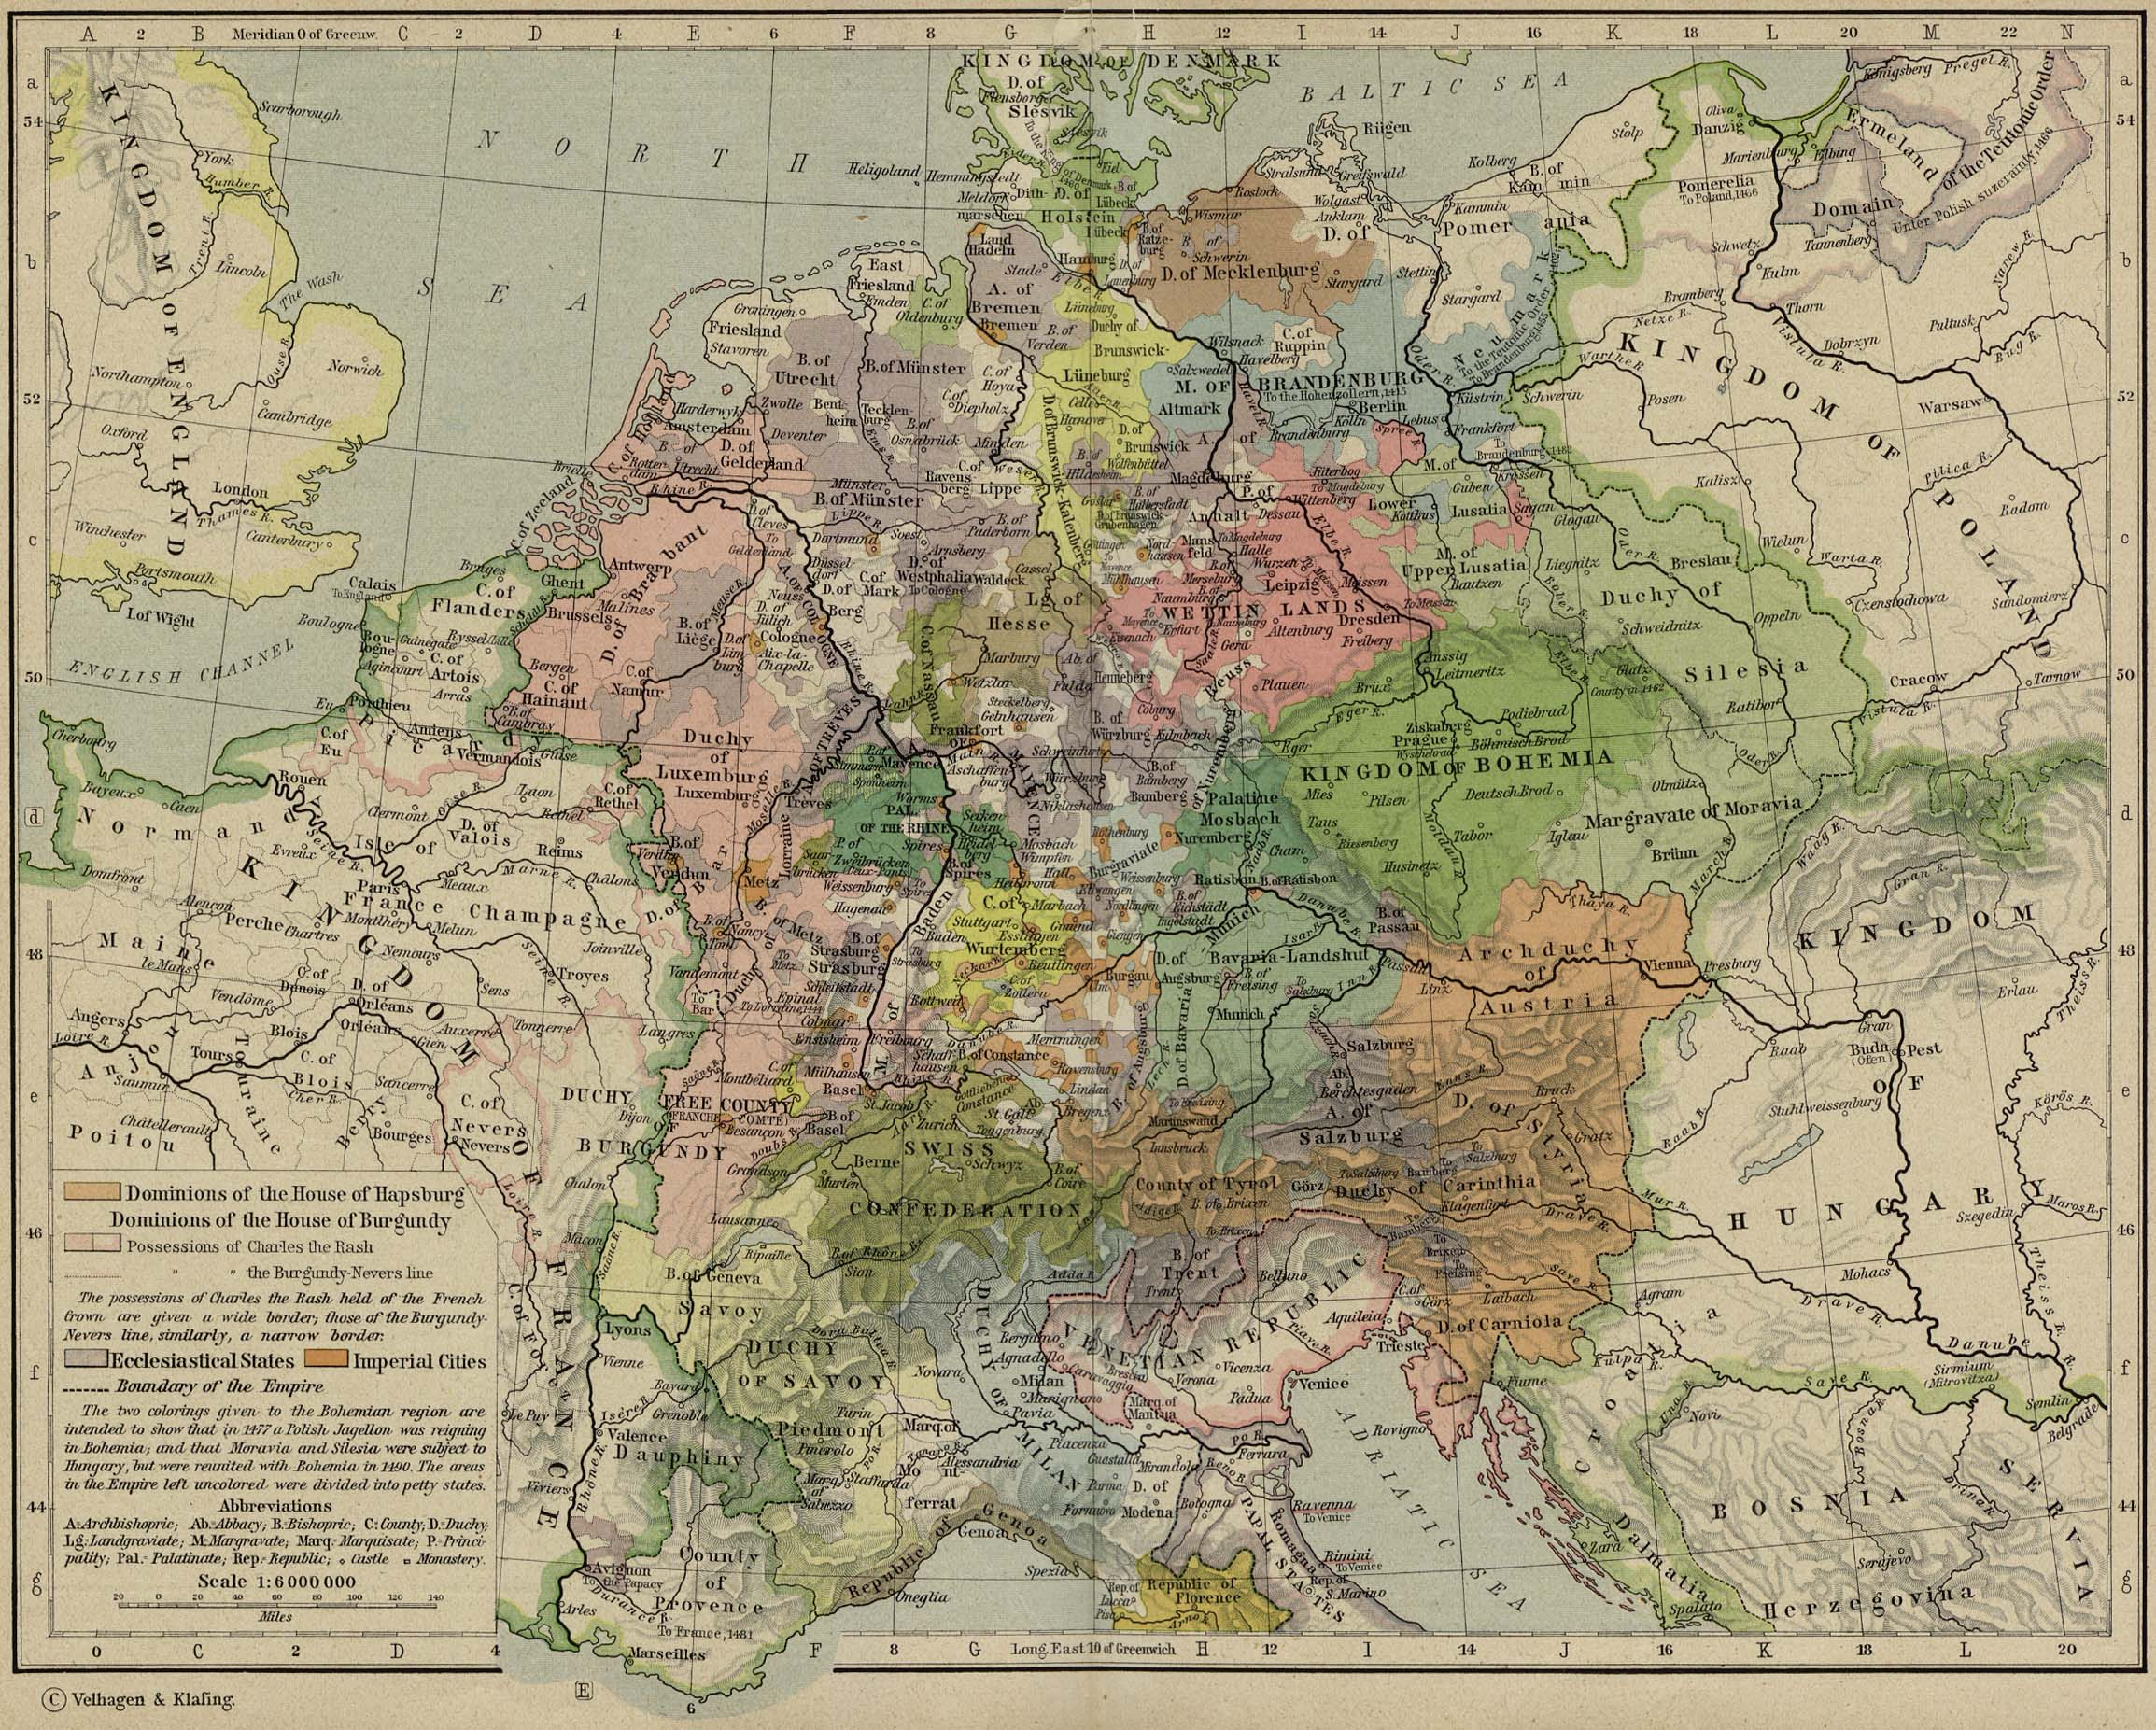 Europe Historical Maps   Perry Casta    eda Map Collection   UT Library     Central Europe about 1477